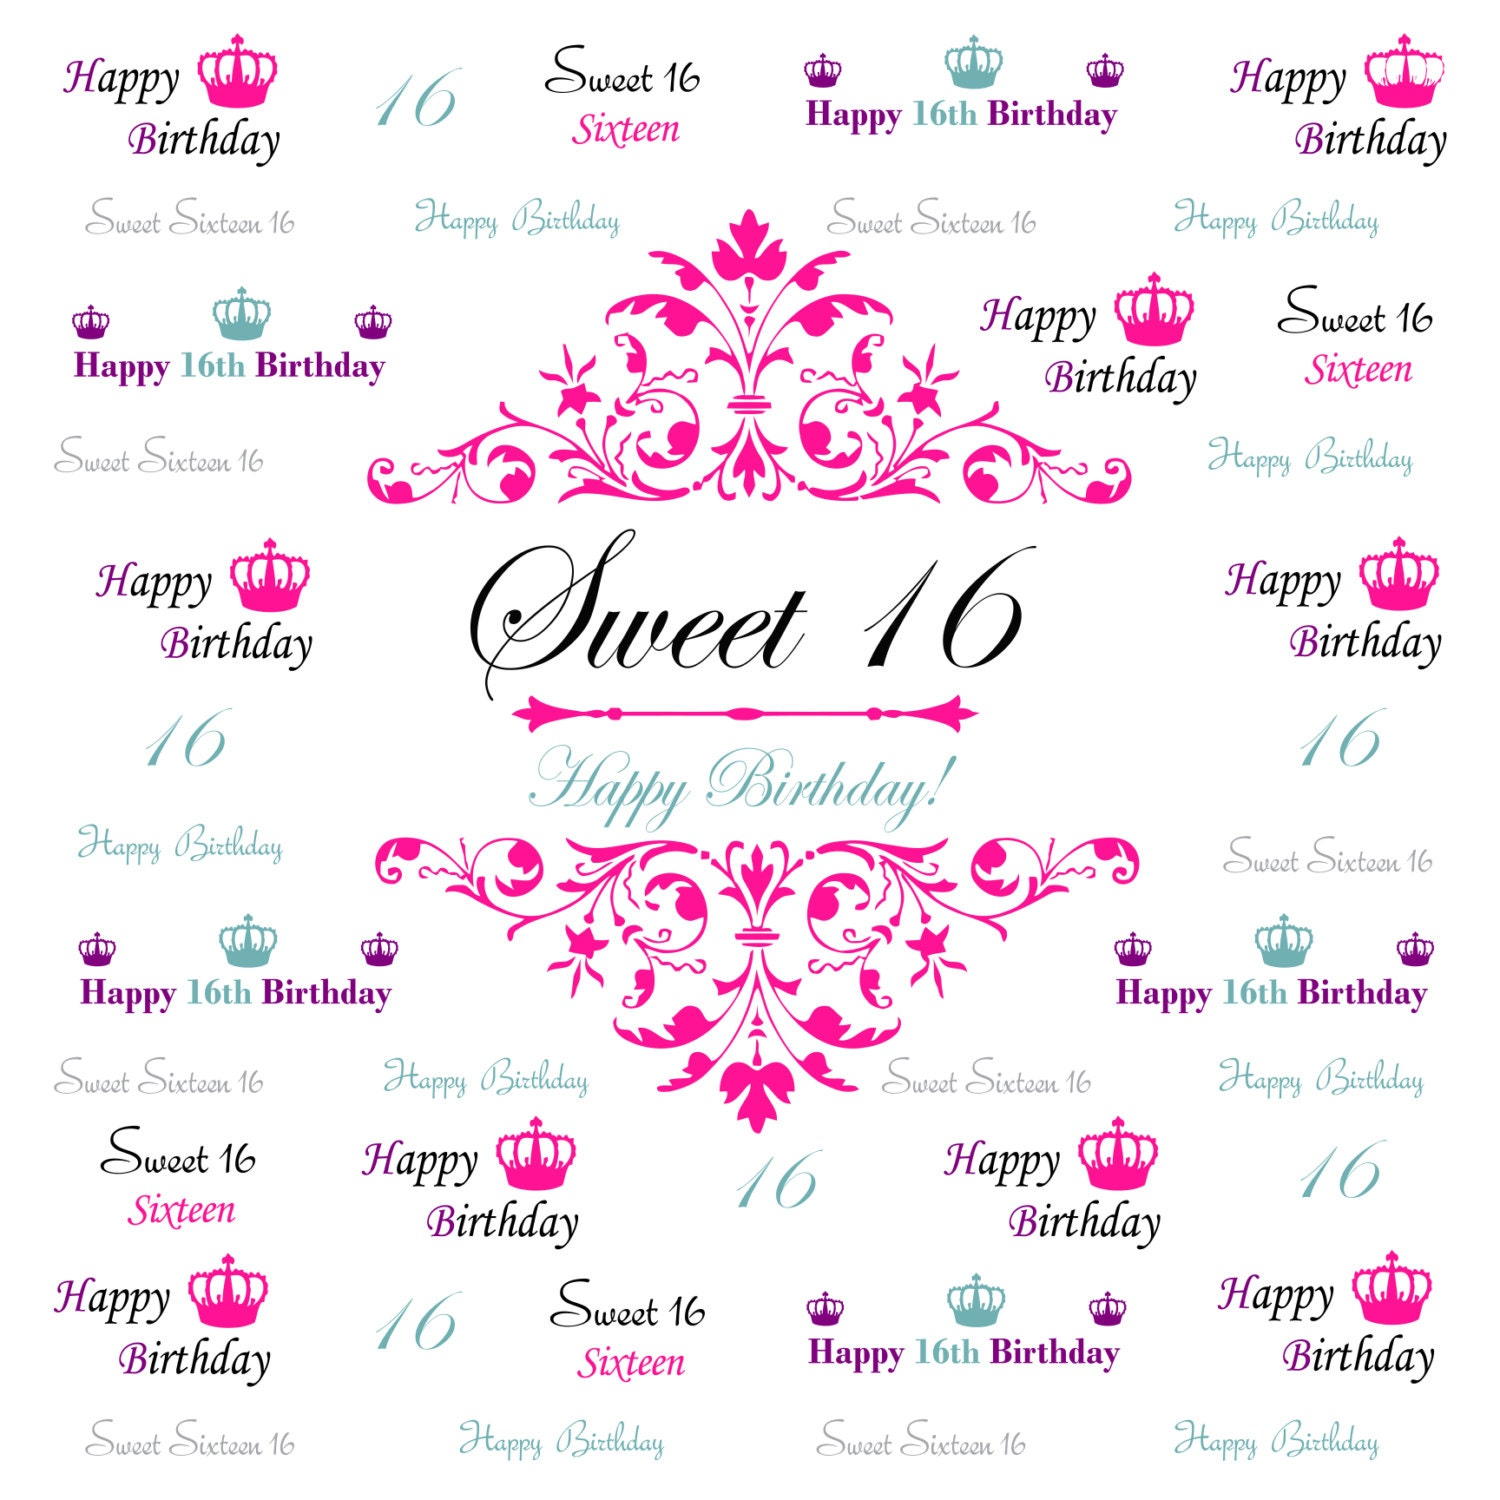 sweet 16 backdrop event step and repeat backdrop birthday. Black Bedroom Furniture Sets. Home Design Ideas